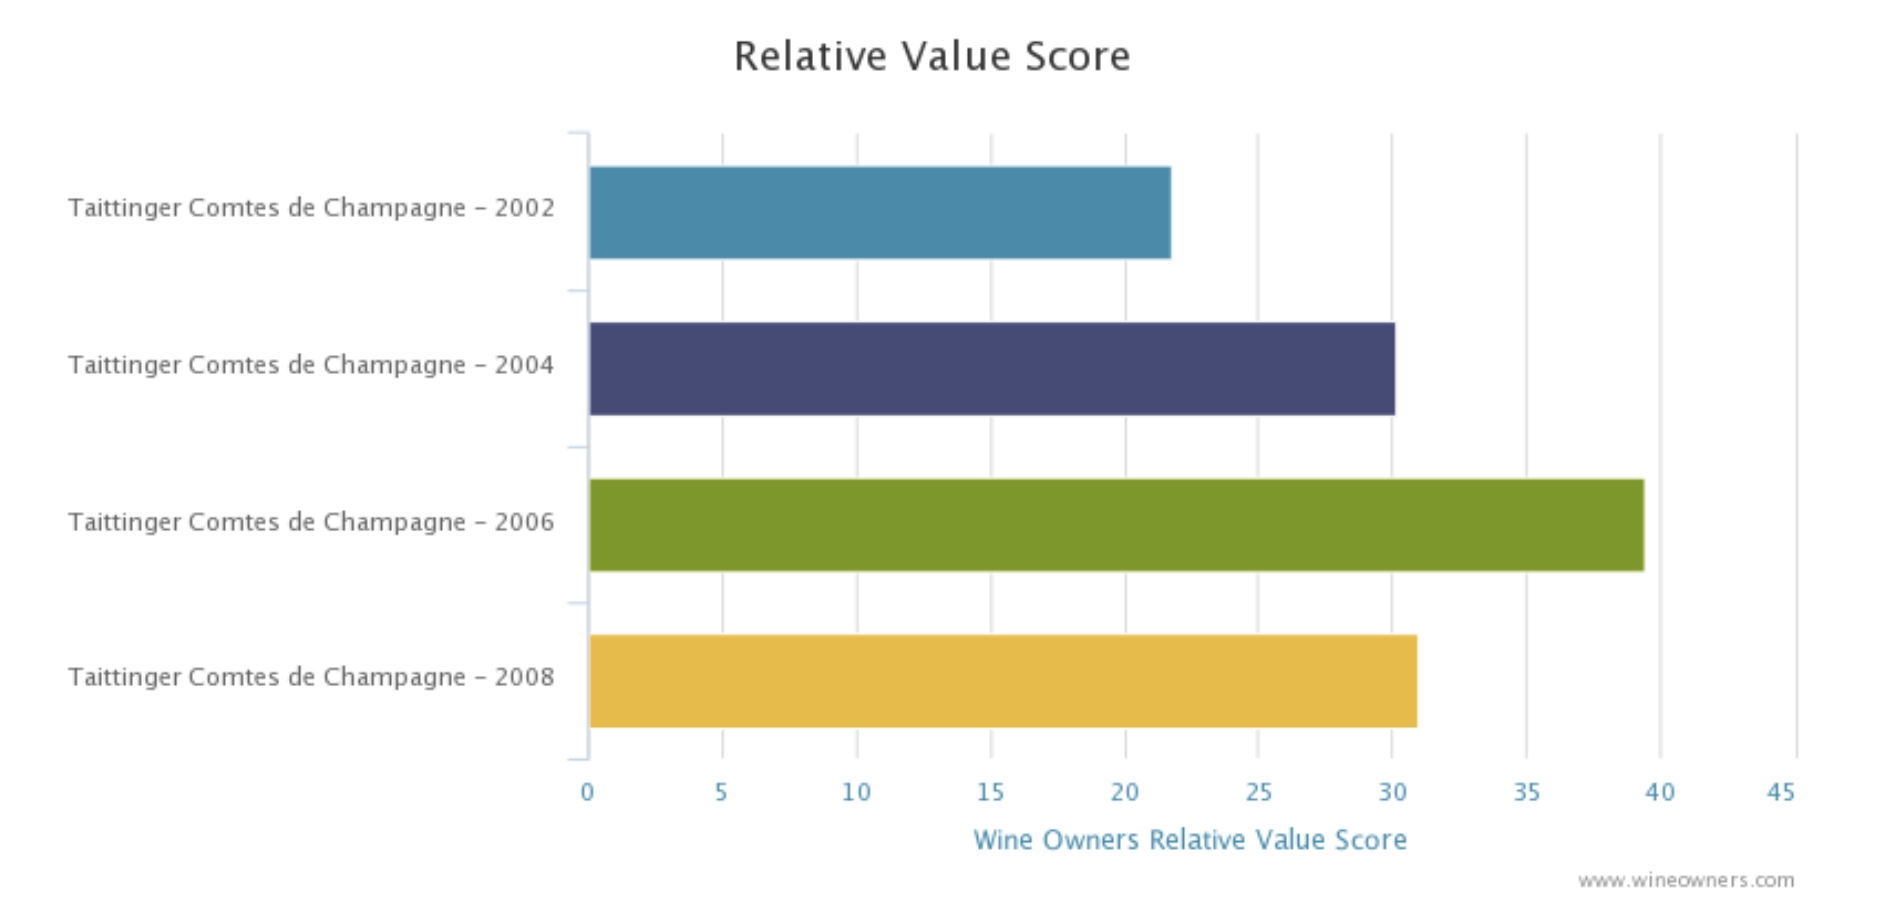 Wine Owners - Taittinger Comtes de Champagne Relative Value Analysis - October 2020